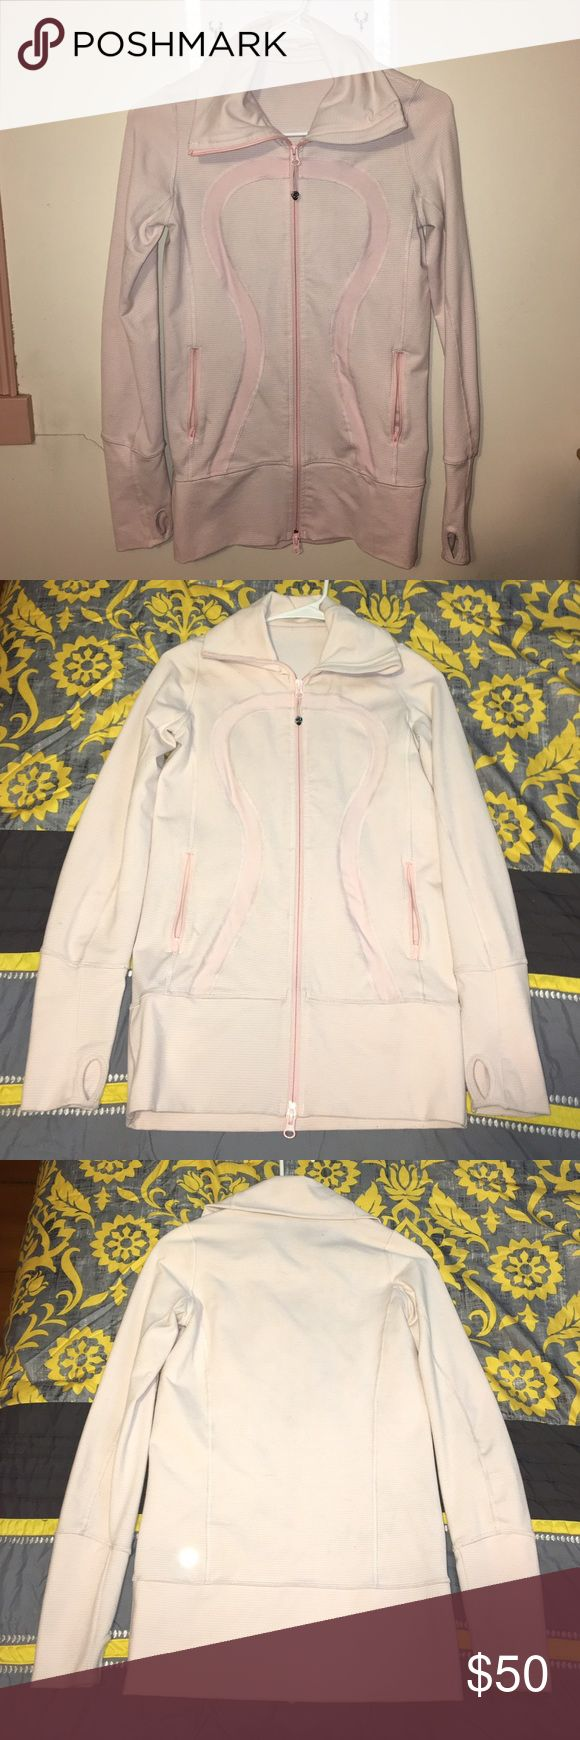 Lululemon Zip-up Sweatshirt Very cute Lululemon Athletica zip-up sweatshirt. It's in good condition. Also appears more pink in person, the lighting doesn't show the color well! Size 2. Price firm, $40 on Merc. *does not apply to BOGO free, can be combined with other sweatshirt for big discount* lululemon athletica Tops Sweatshirts & Hoodies